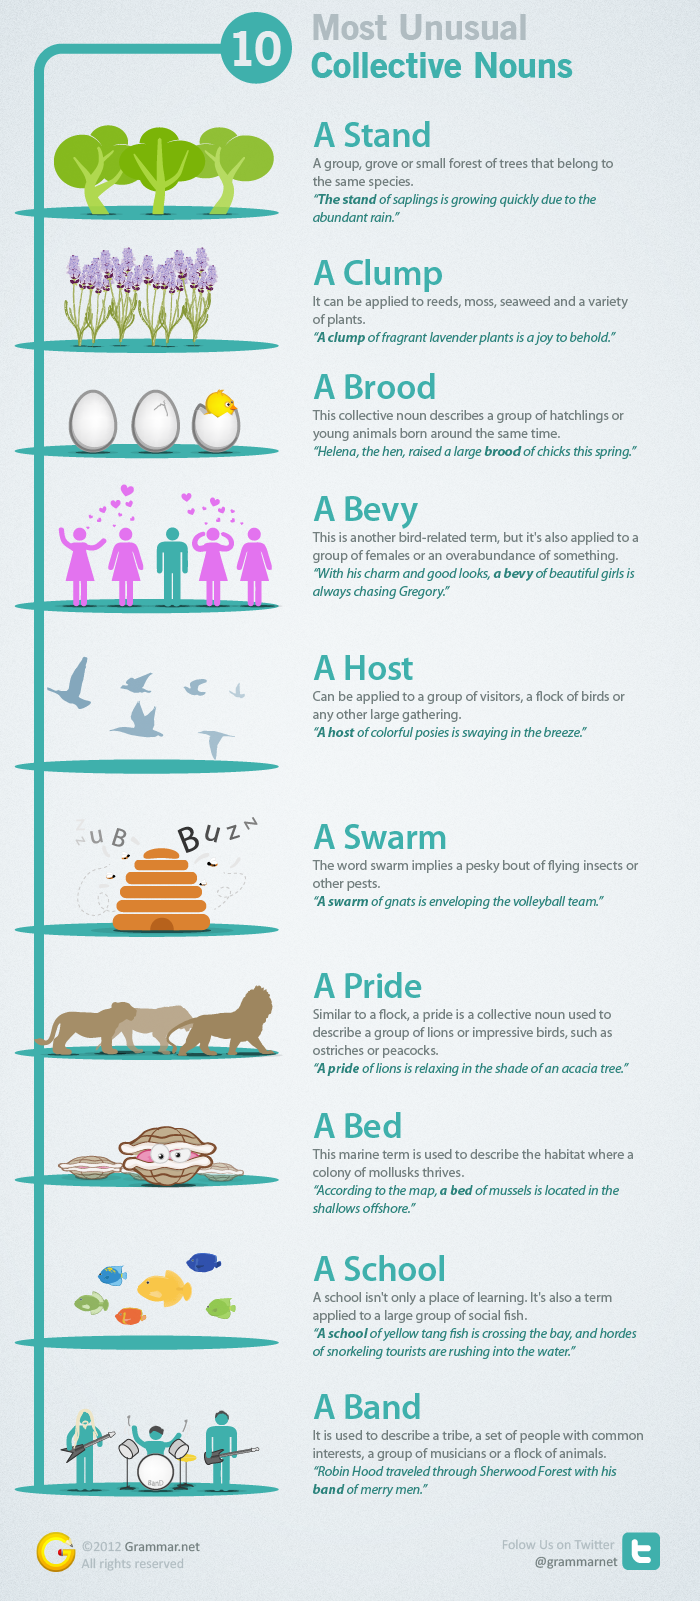 10 Most Unusual Collective Nouns